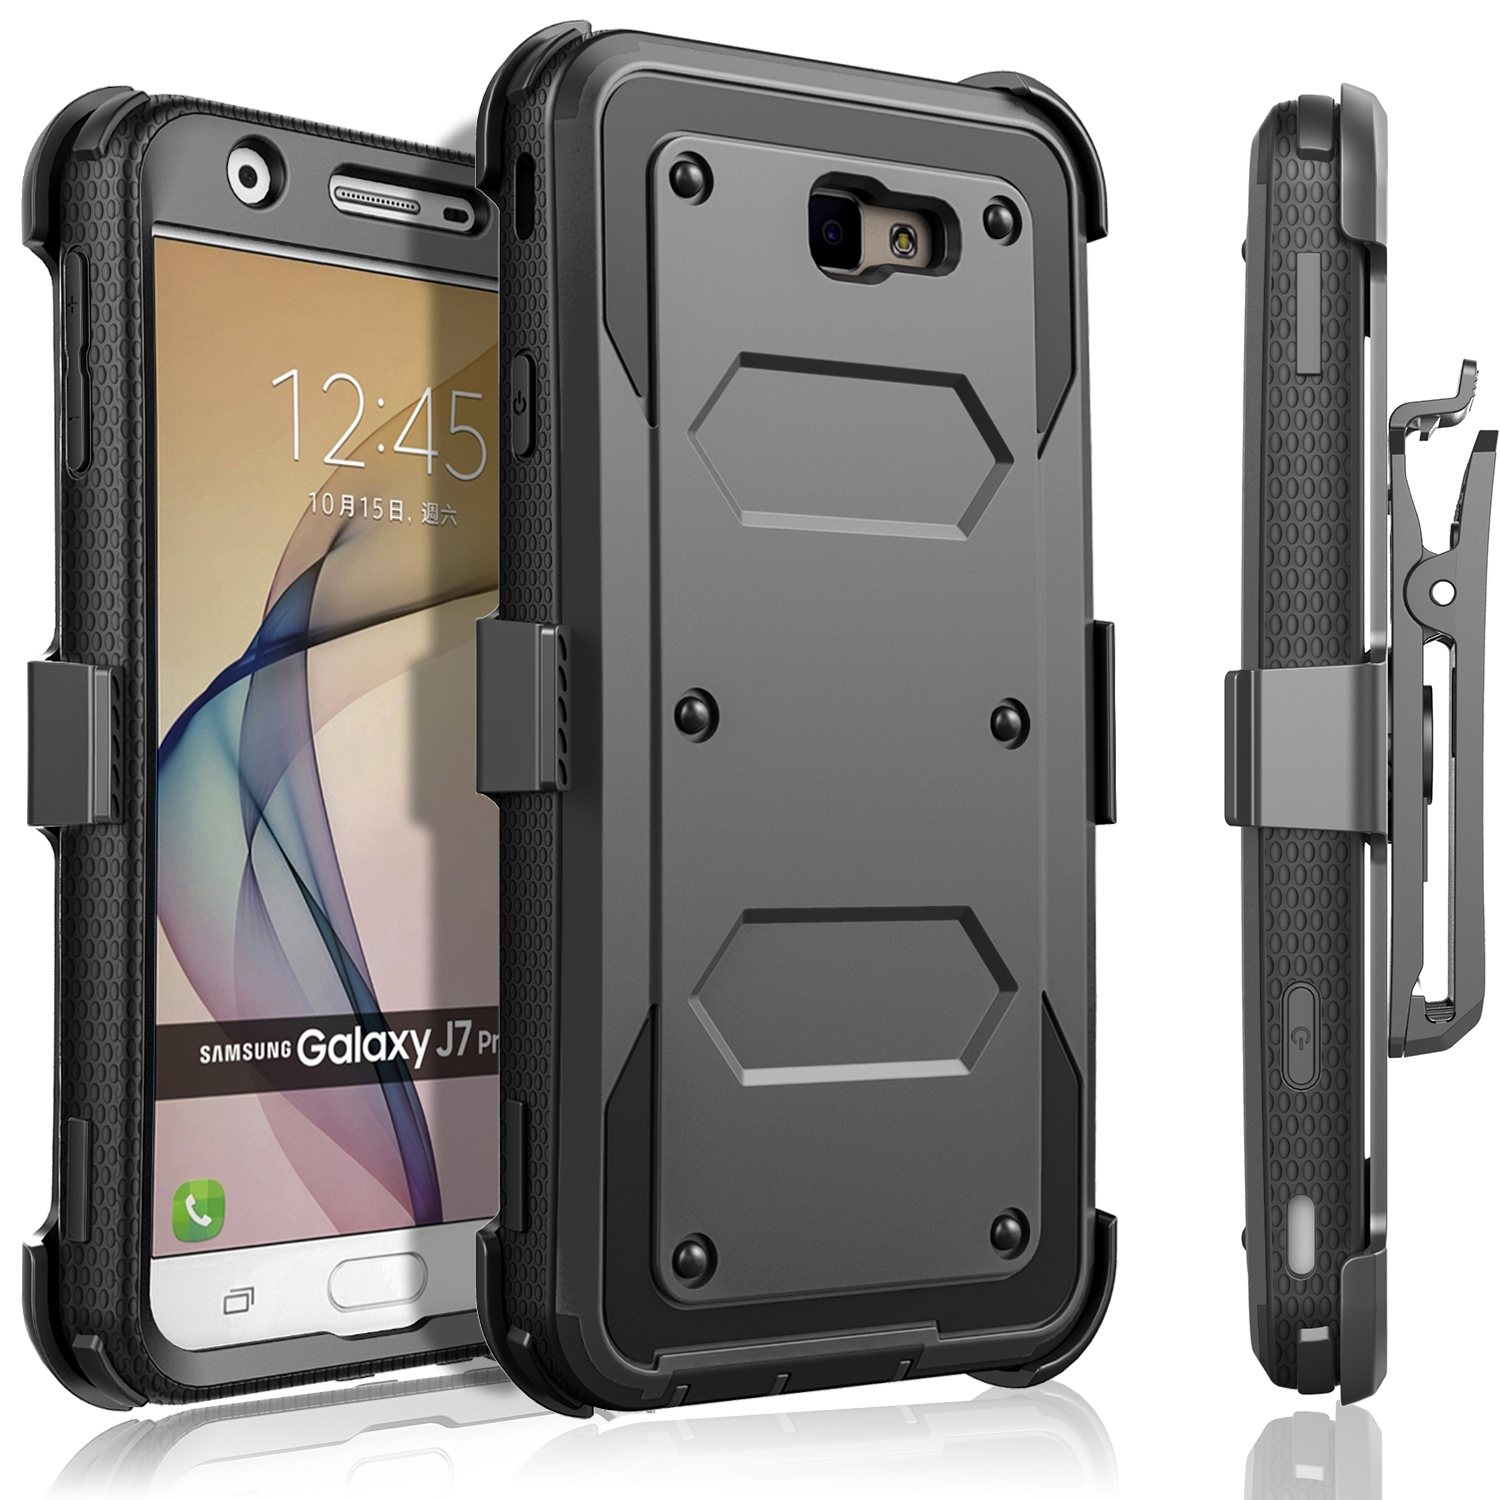 Galaxy J7 V Case, Galaxy J7 Perx Case, Galaxy J7 Sky Pro Case, [SUPER GUARD] Dual Layer Protection With [Built-in Screen Protector] Holster Locking Belt Clip+Circle(TM) Stylus Touch Screen Pen (Black)